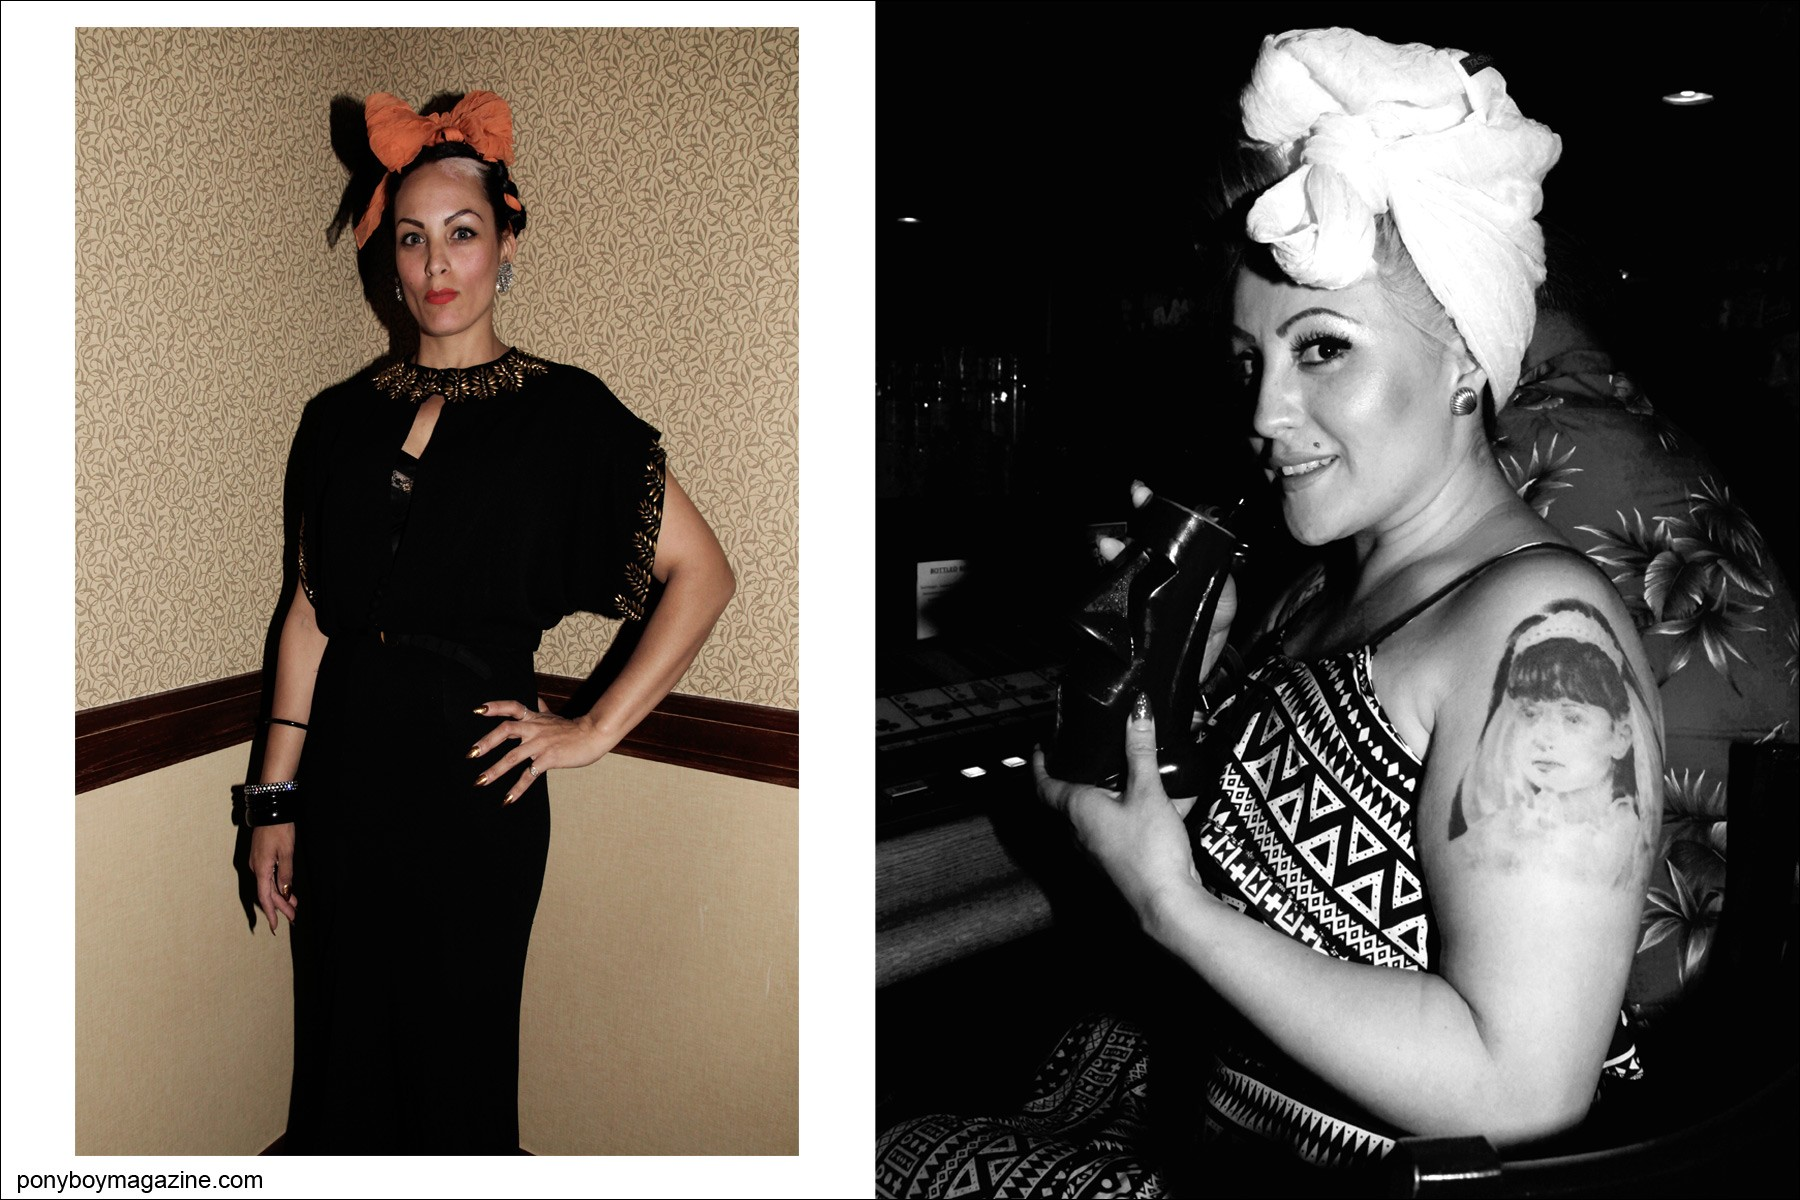 Vintage style women in 1950's head wraps photographed by Alexander Thompson for Ponyboy Magazine at the Viva Las Vegas rockabilly weekender.